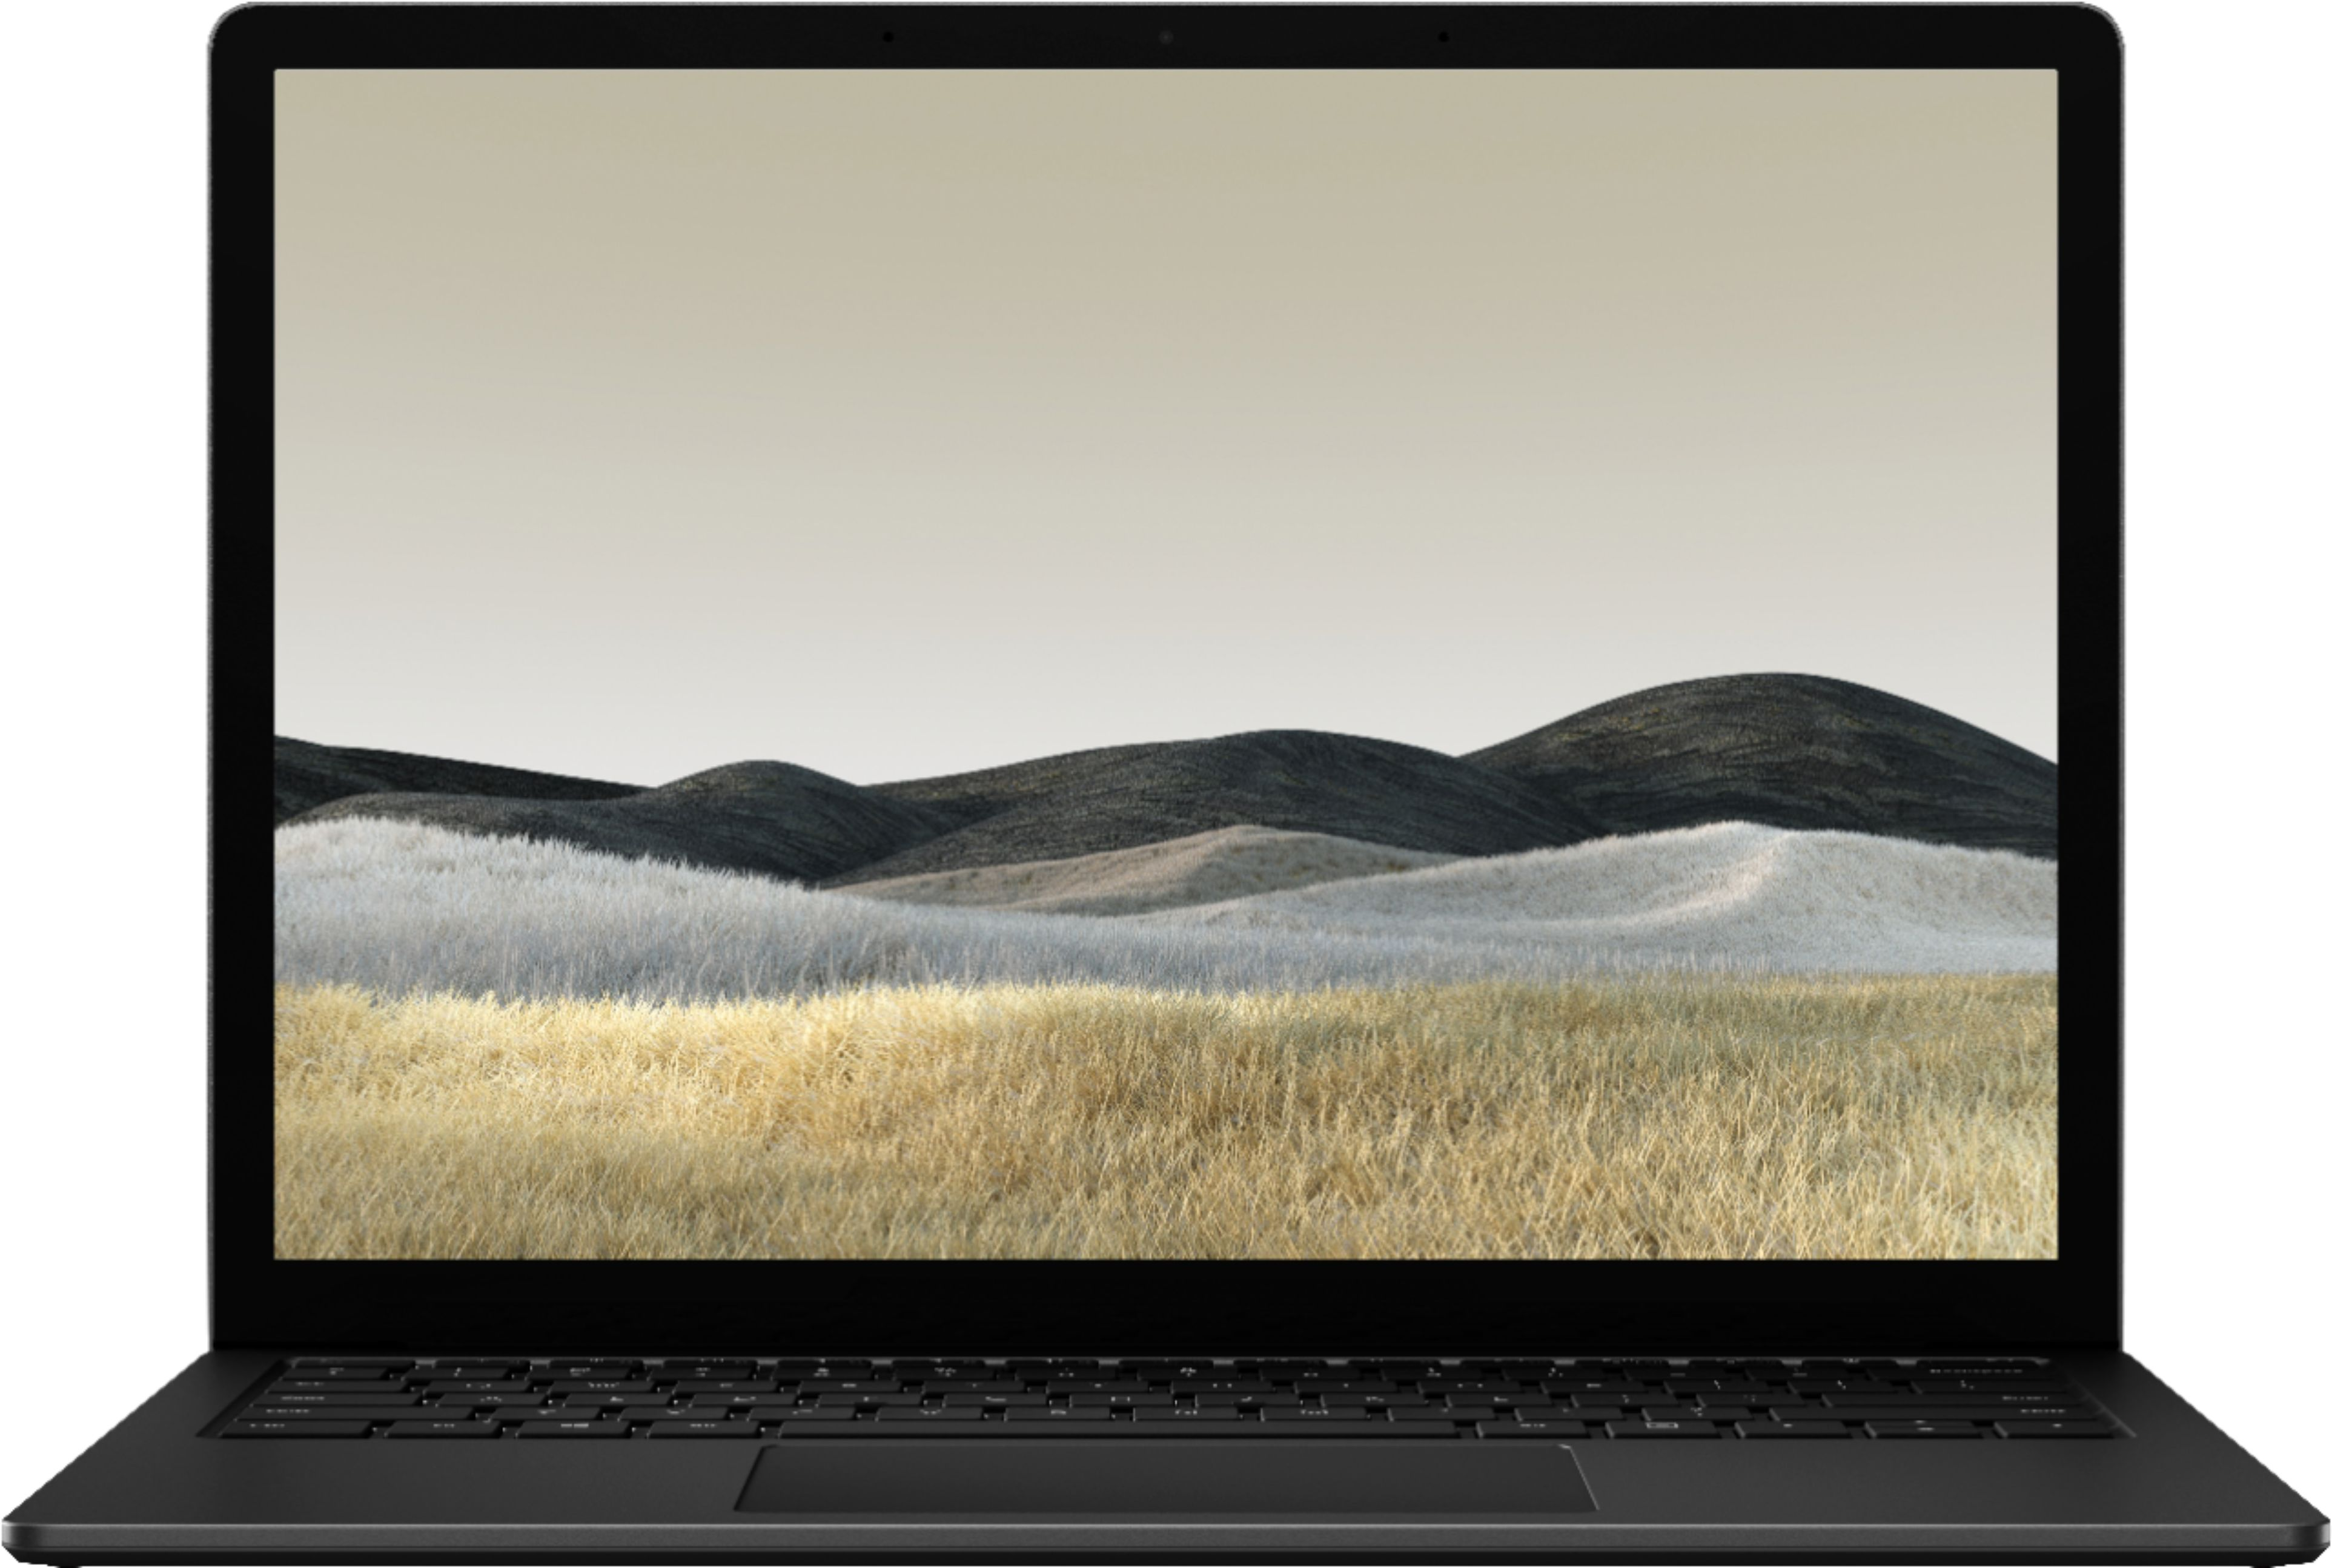 """Alt View Zoom 11. Microsoft - Surface Laptop 3 - 13.5"""" Touch-Screen - Intel Core i5 - 8GB Memory - 256GB Solid State Drive (Latest Model) - Matte Black."""